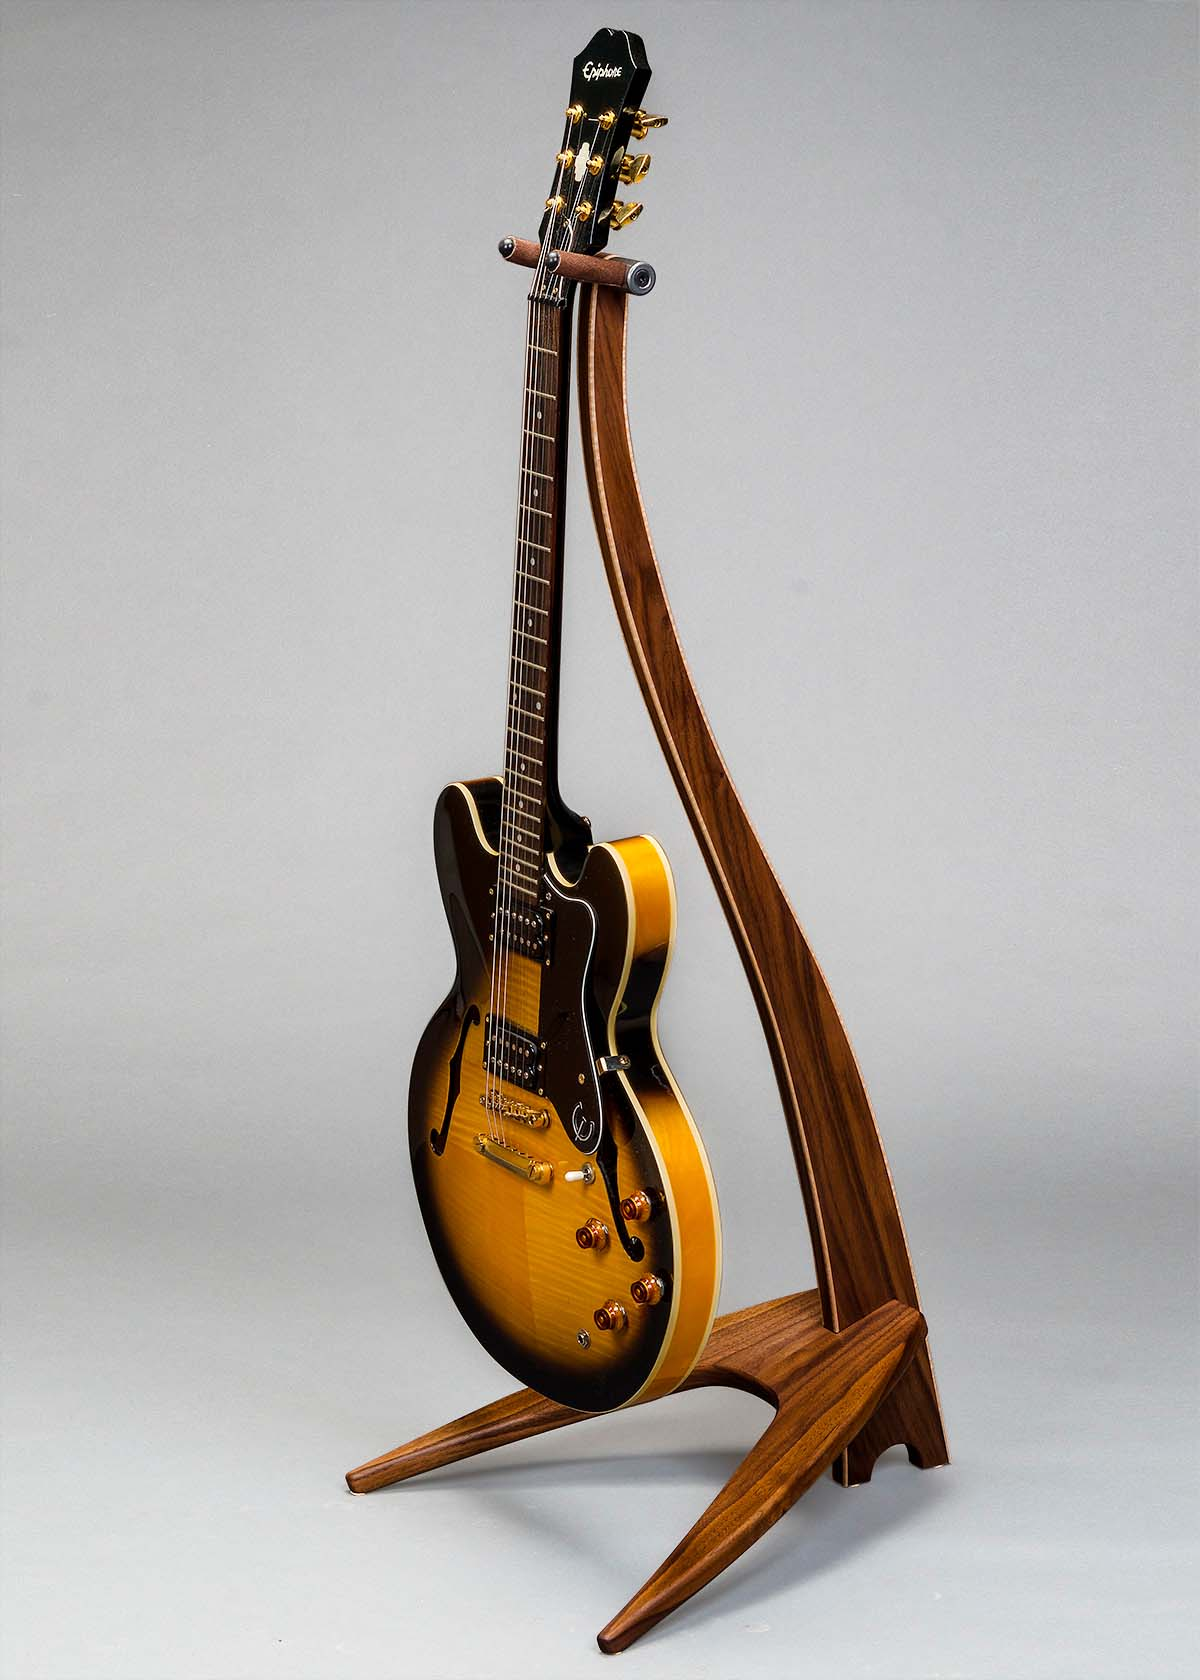 WM Guitar Stand in Walnut with Curly Maple Binding